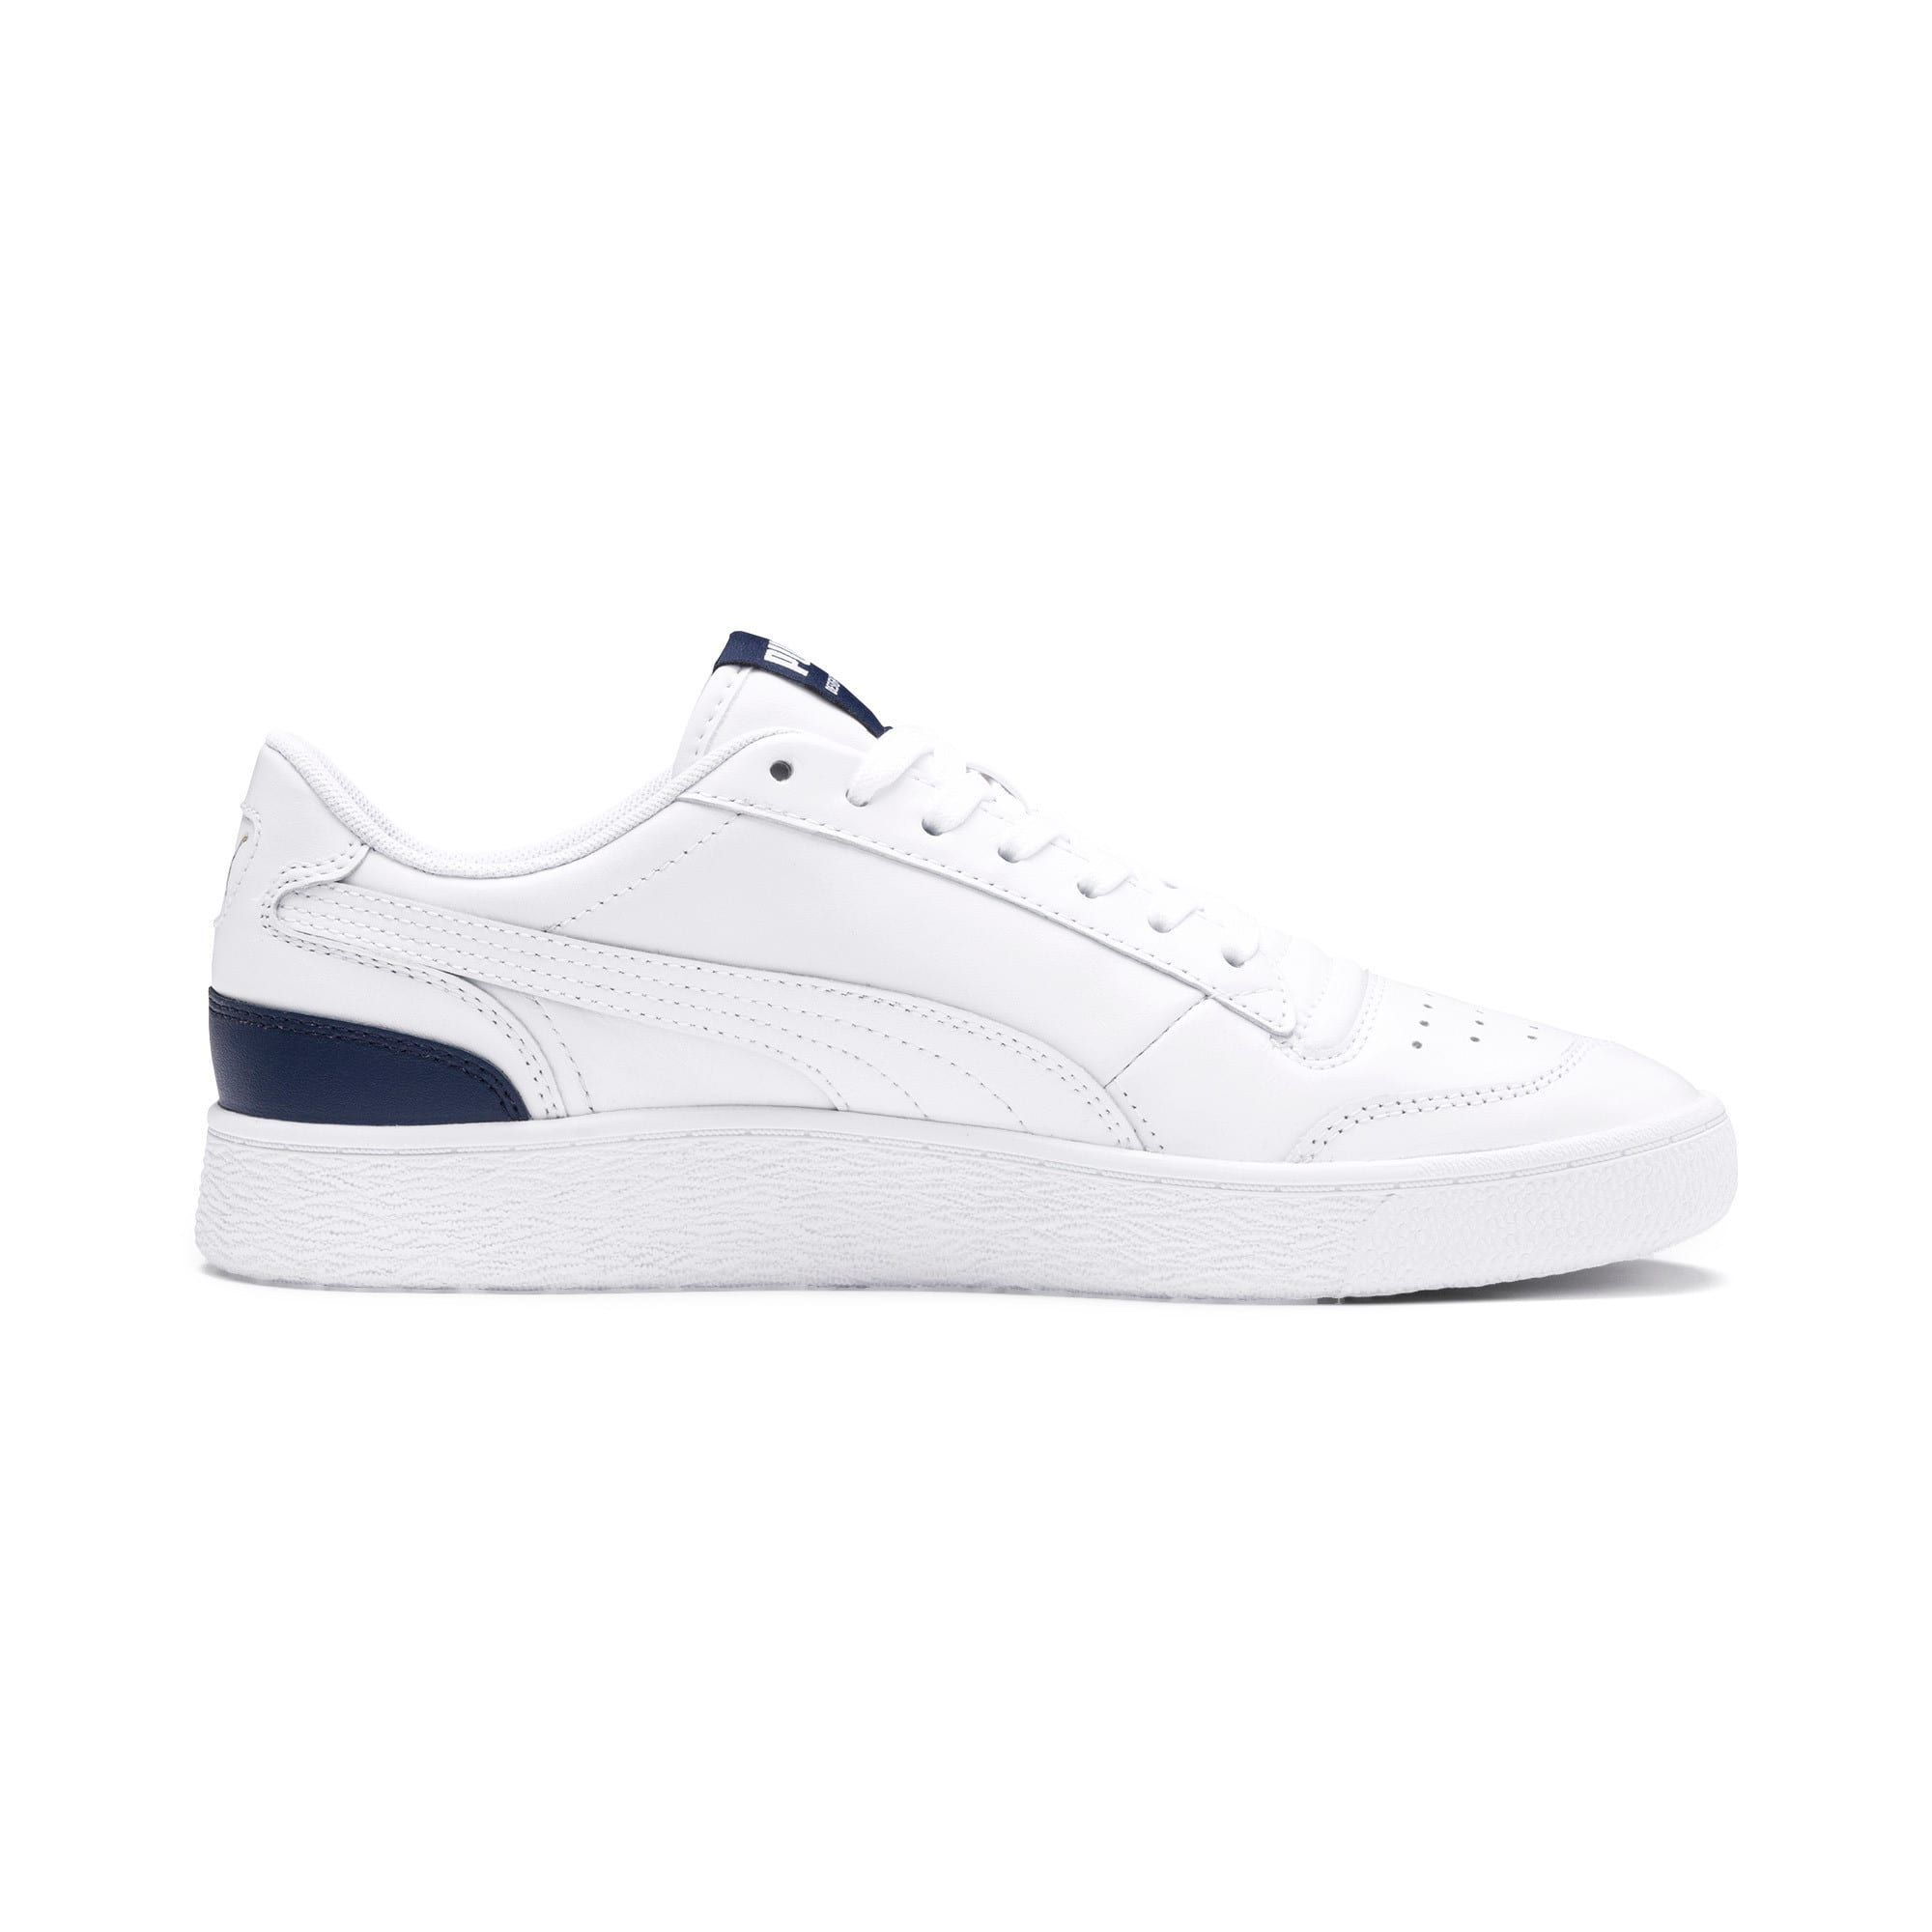 PUMA Ralph Sampson Lo Trainers in White/Peacoat/White size 10.5